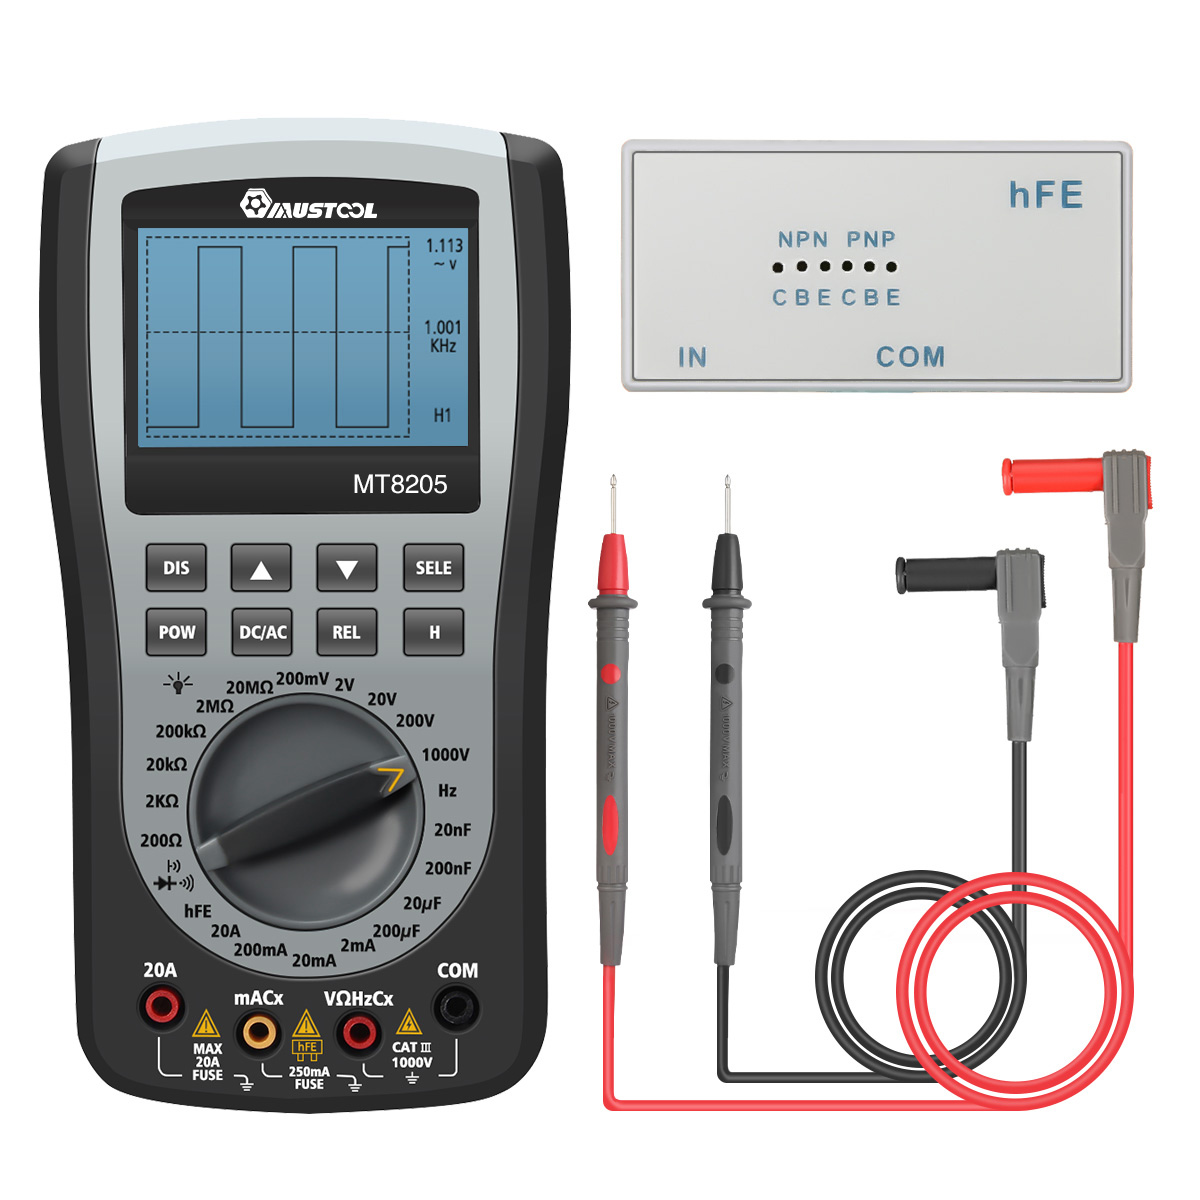 MUSTOOL MT8205 2 in 1 Digital Intelligent Handheld Storage Oscilloscope Multimeter AC/DC Current Voltage Resistance Frequency Diode Tester